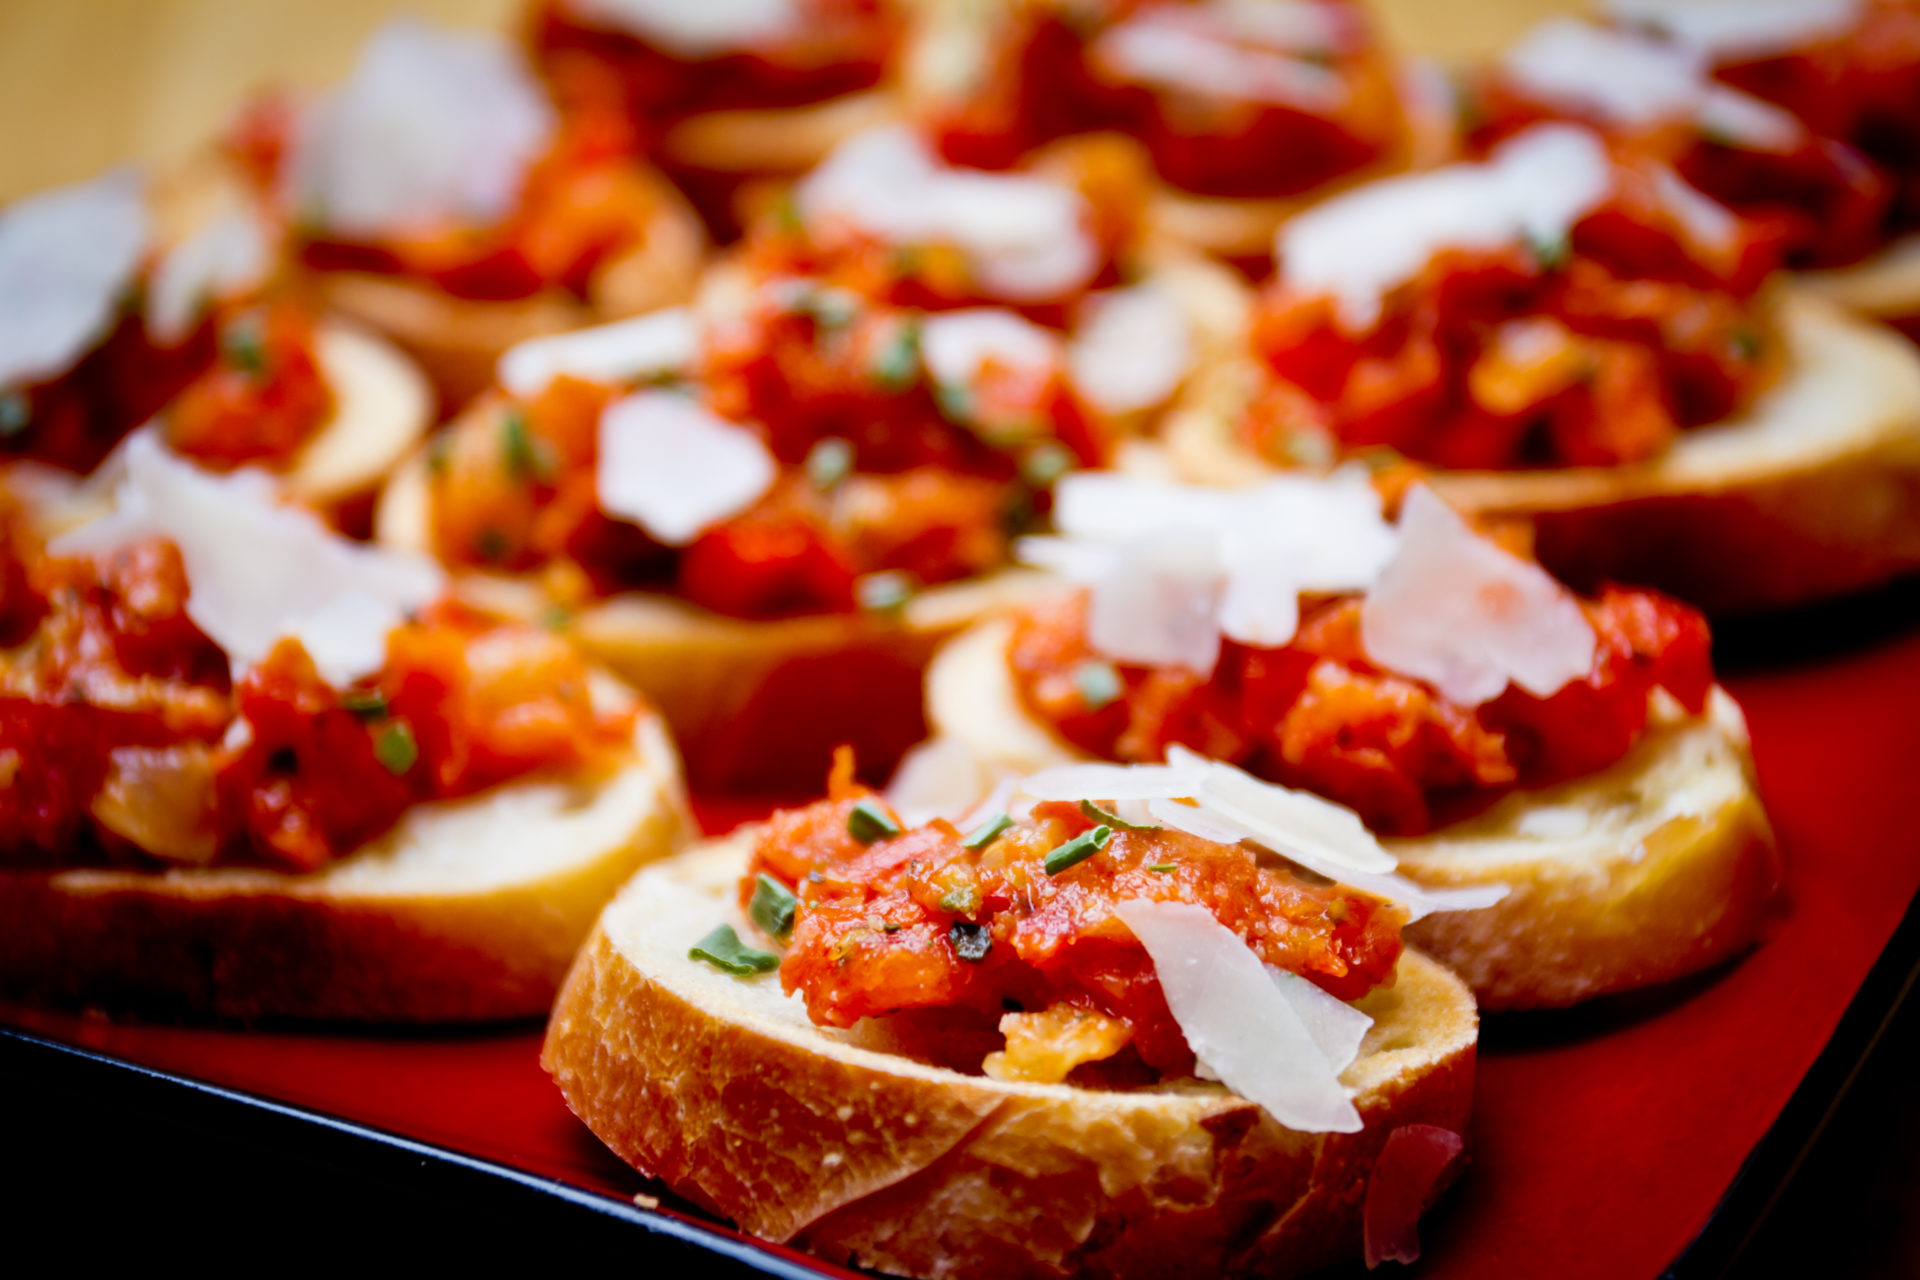 Bruschetta with minced tomato, garlic, olive oil and shaved parmesan cheese